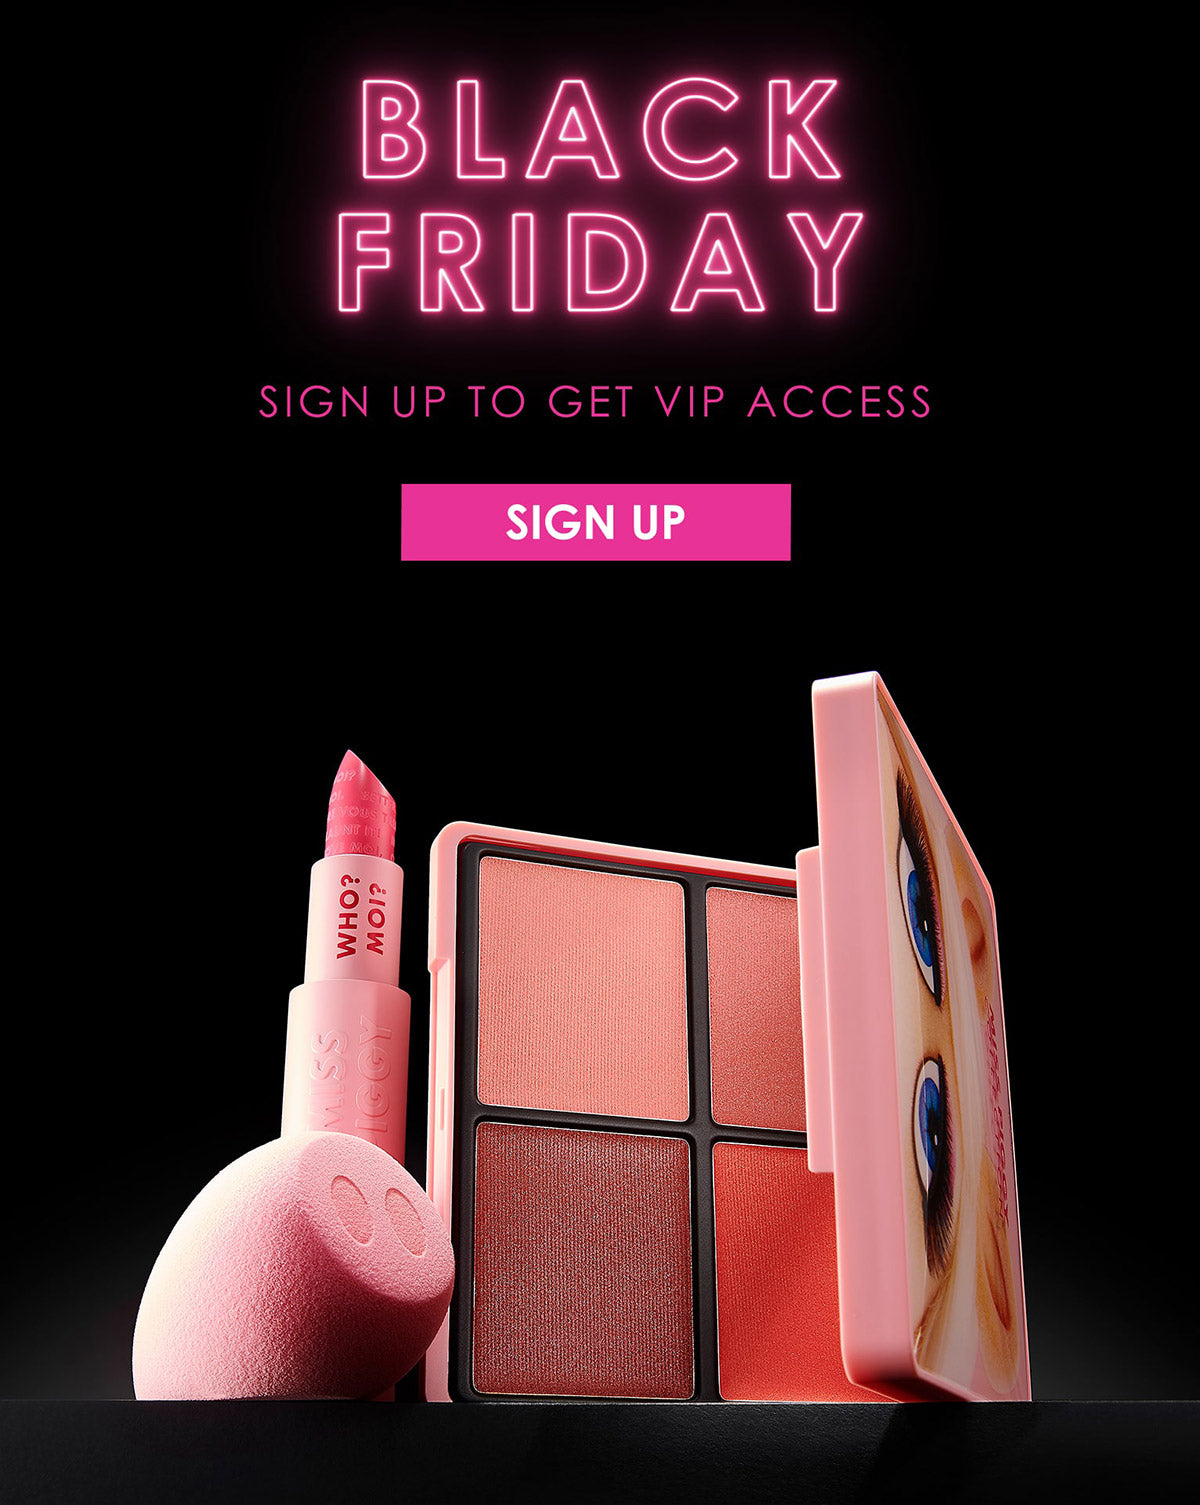 dewy spritz now launched!